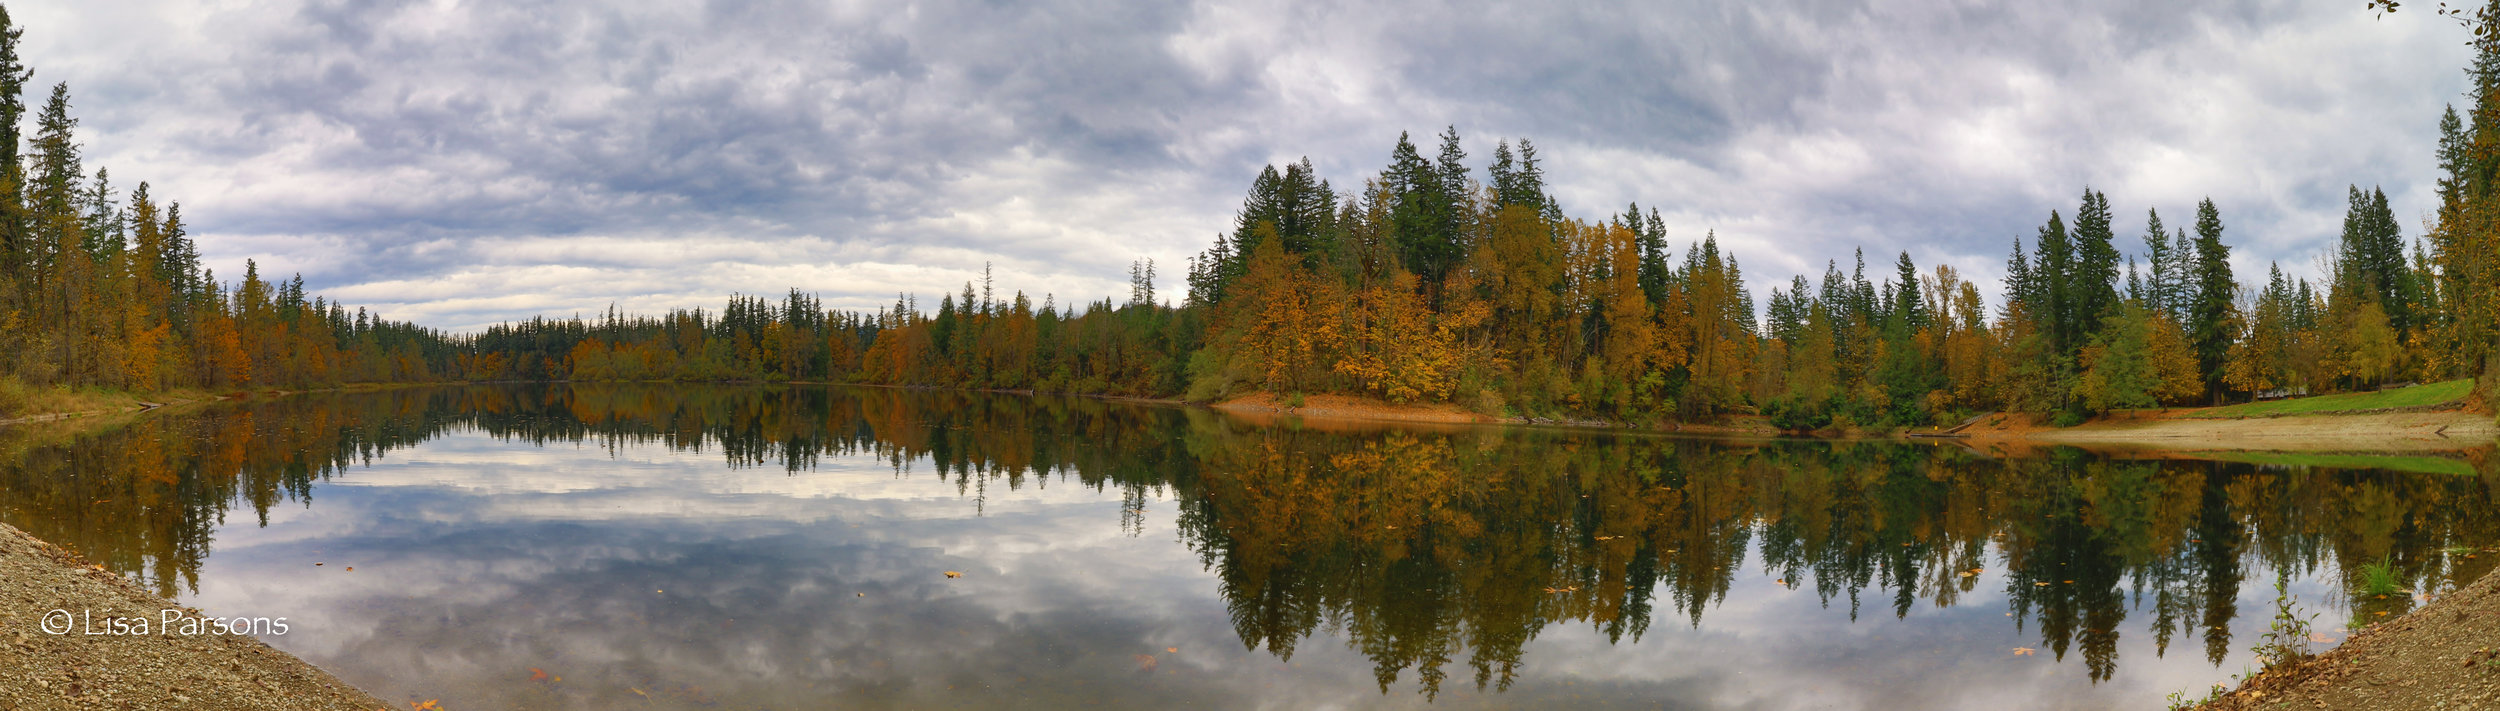 Autumn Color and Moody Skies at Nolte State Park